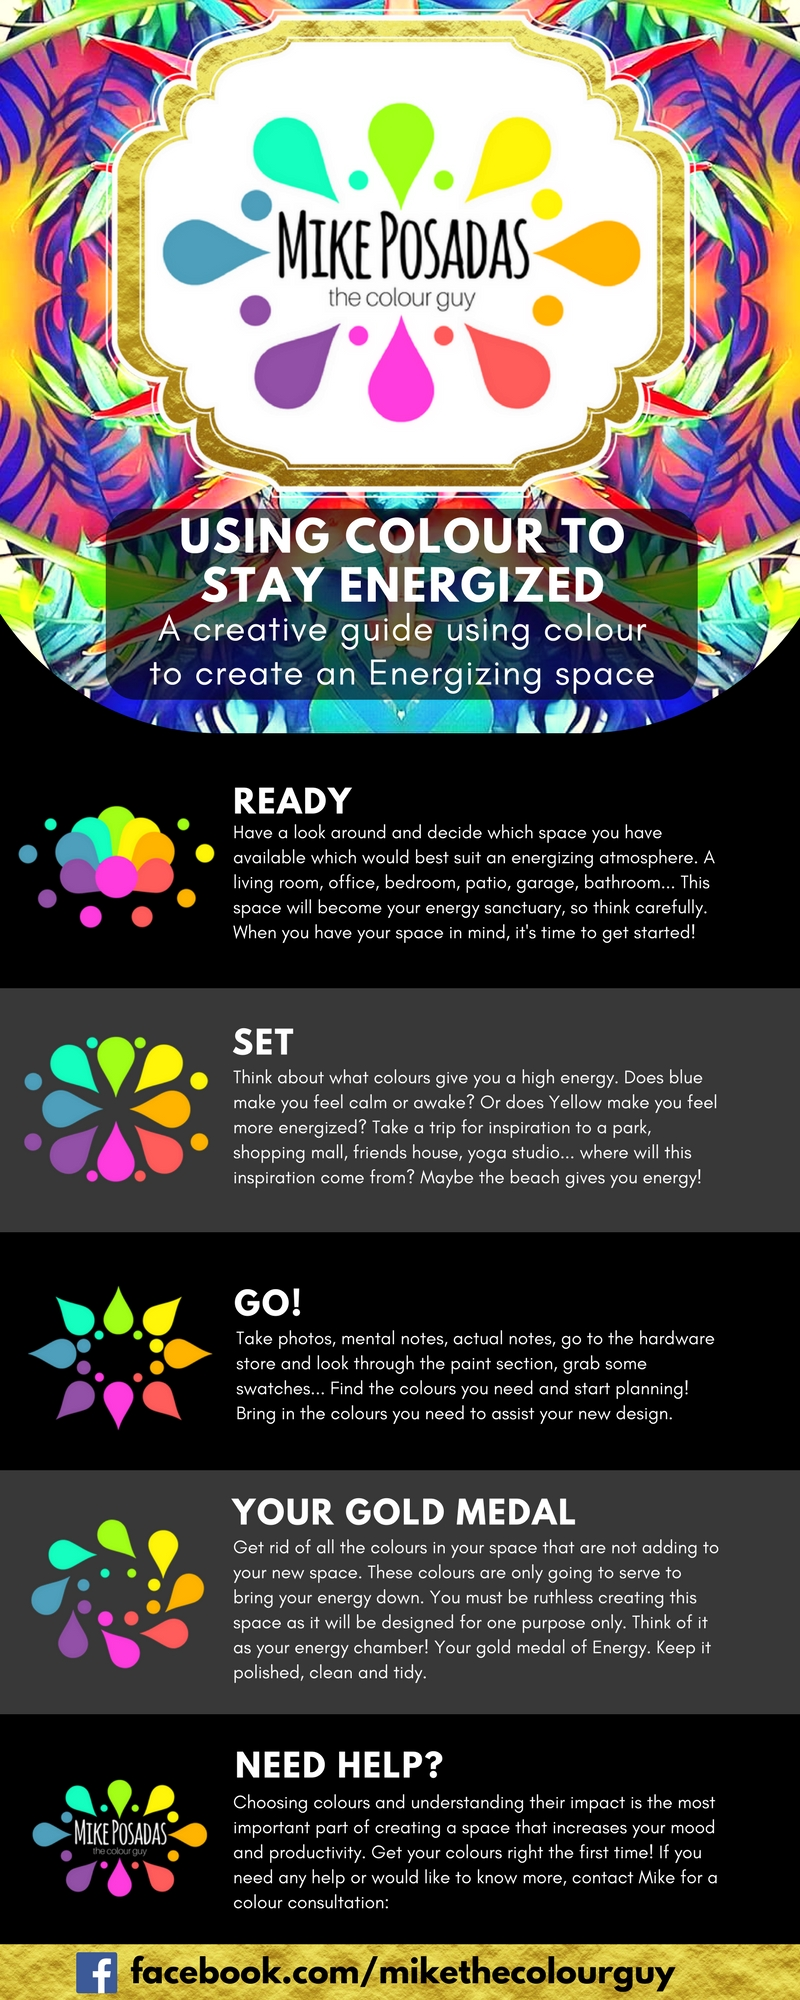 Using colour to stay energized